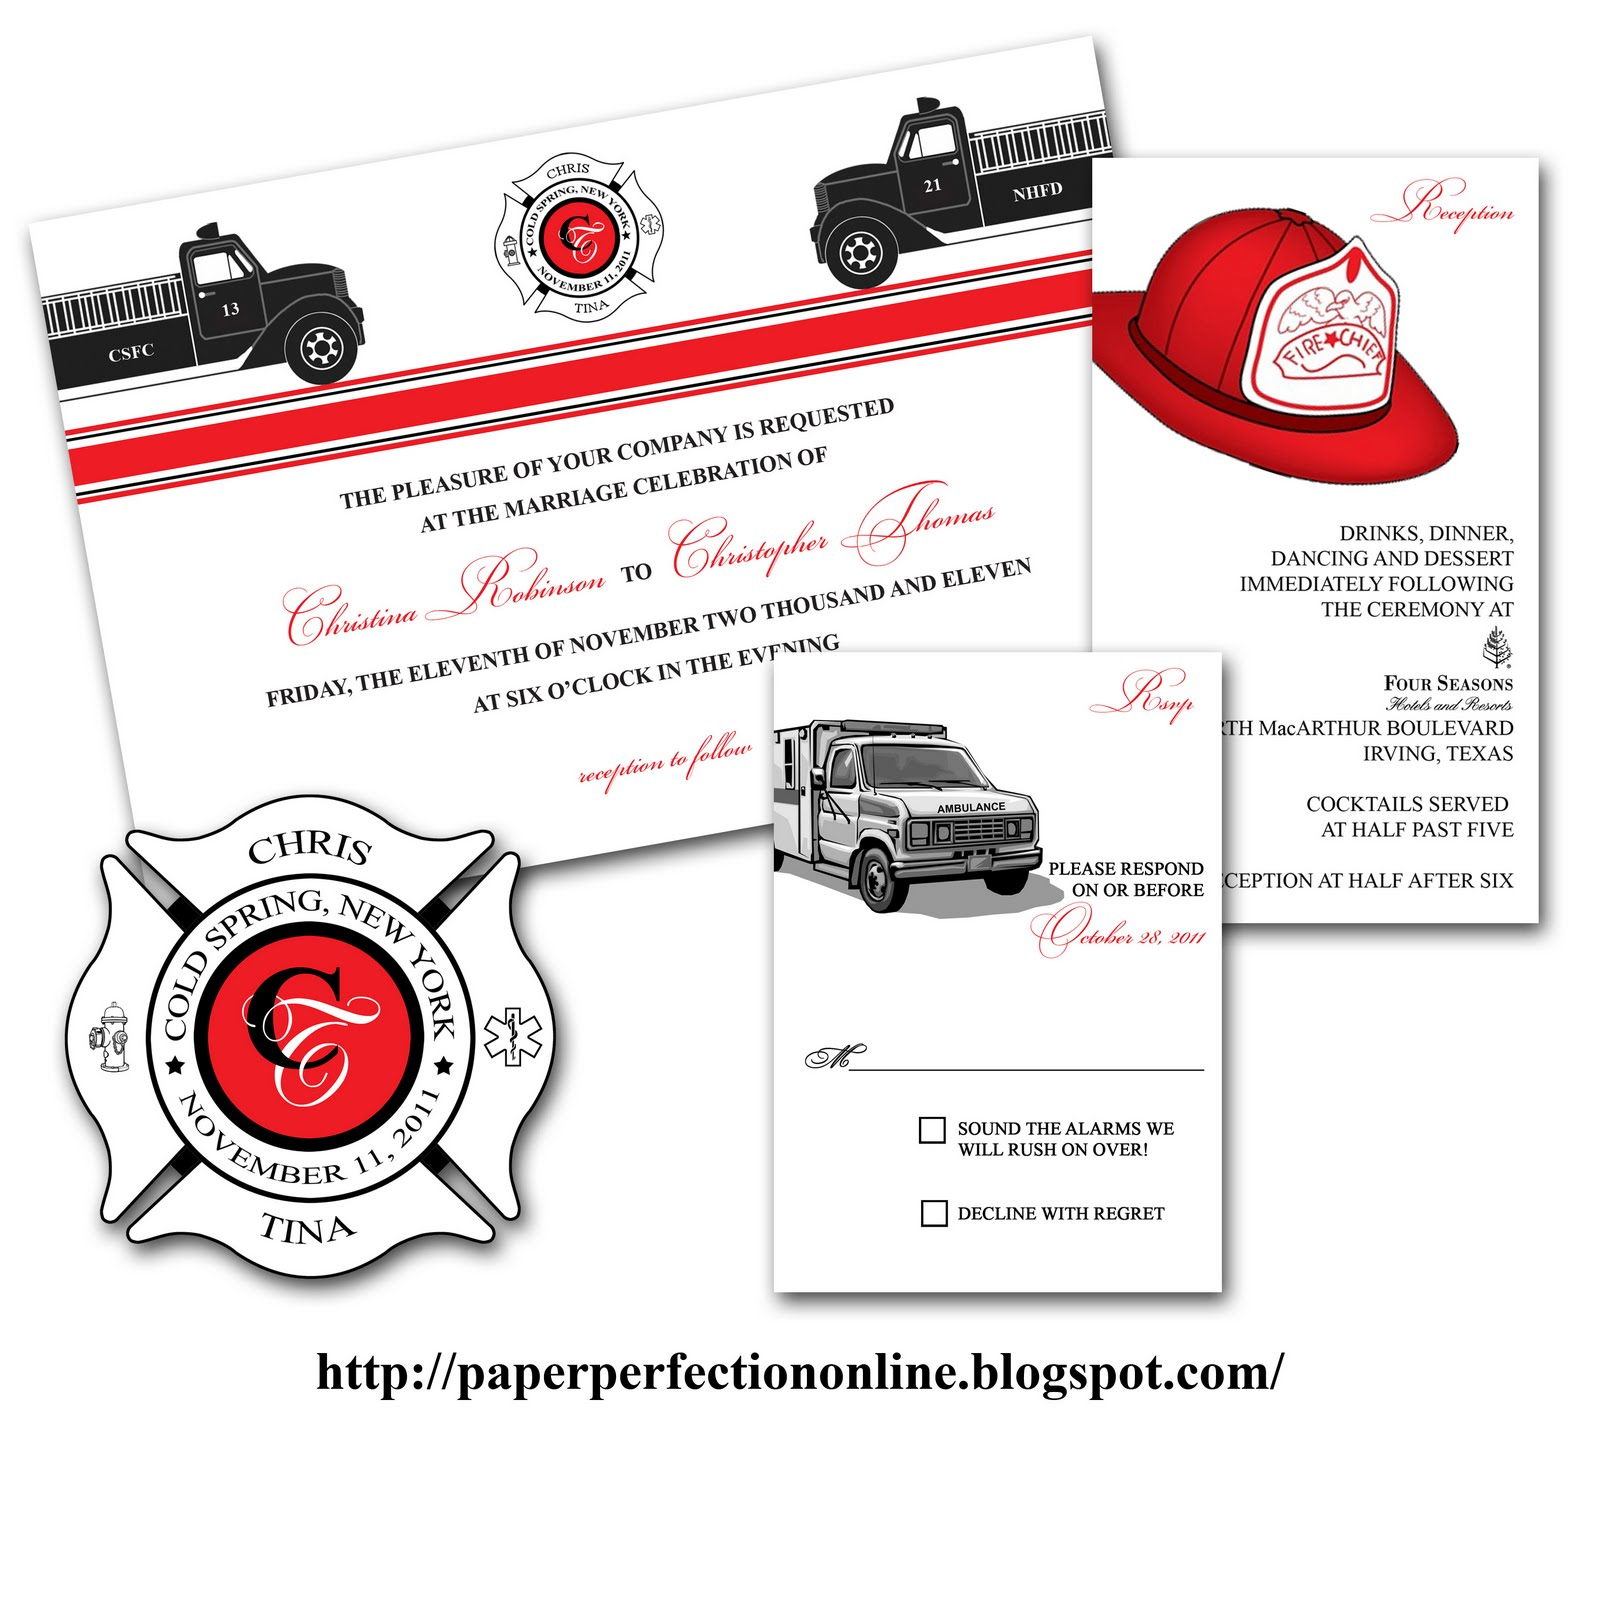 Paper Perfection: Tina's Fire Fighter Wedding Invitation